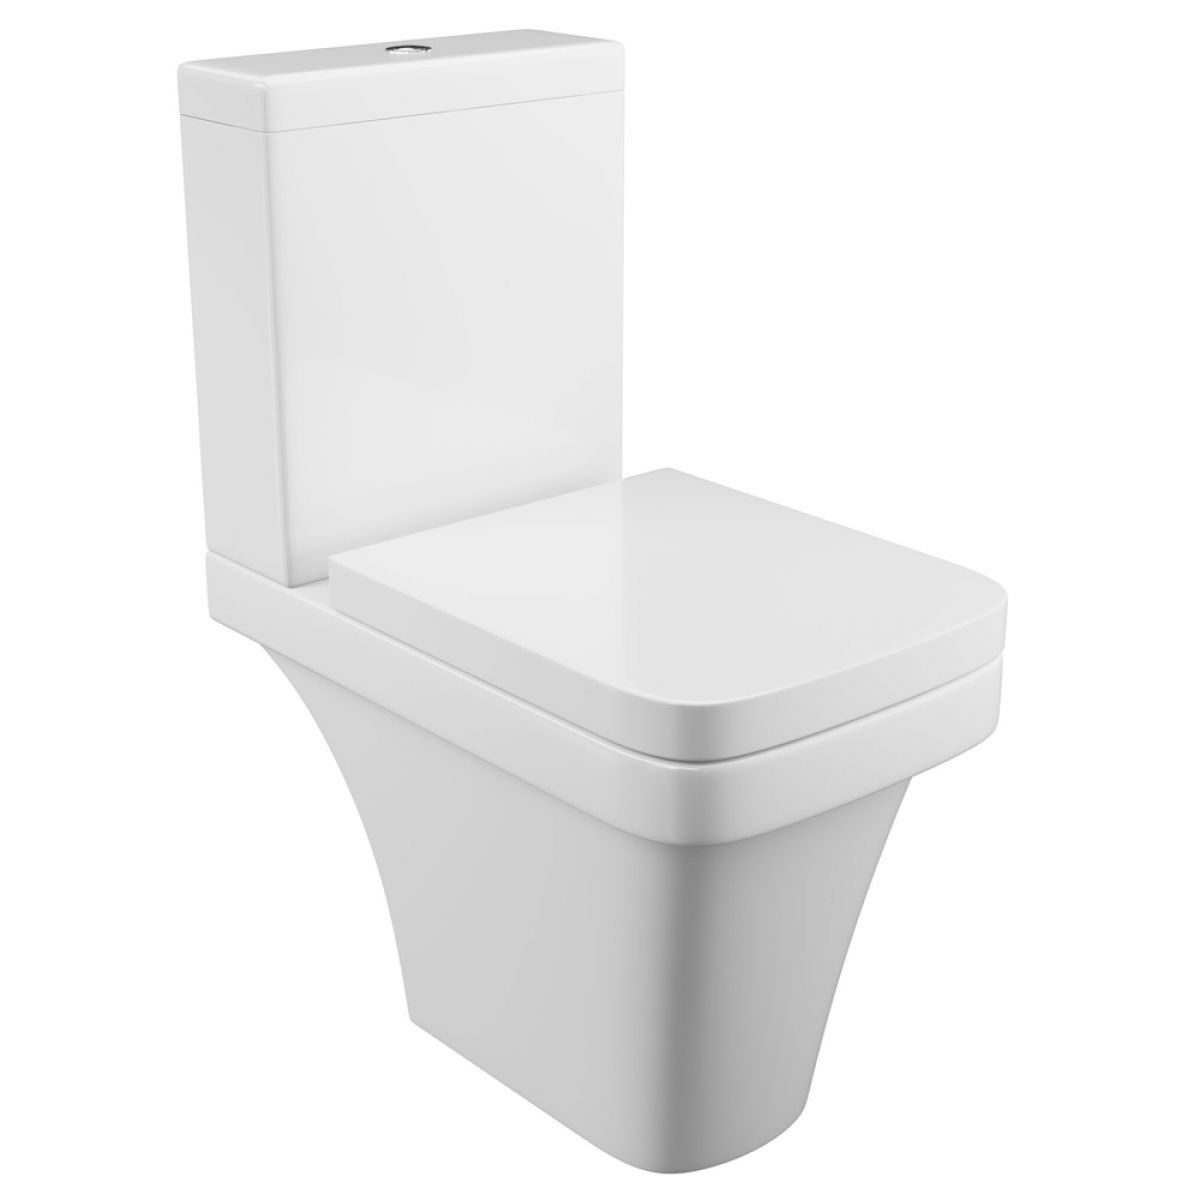 Cassellie Rivelin Close Coupled Toilet